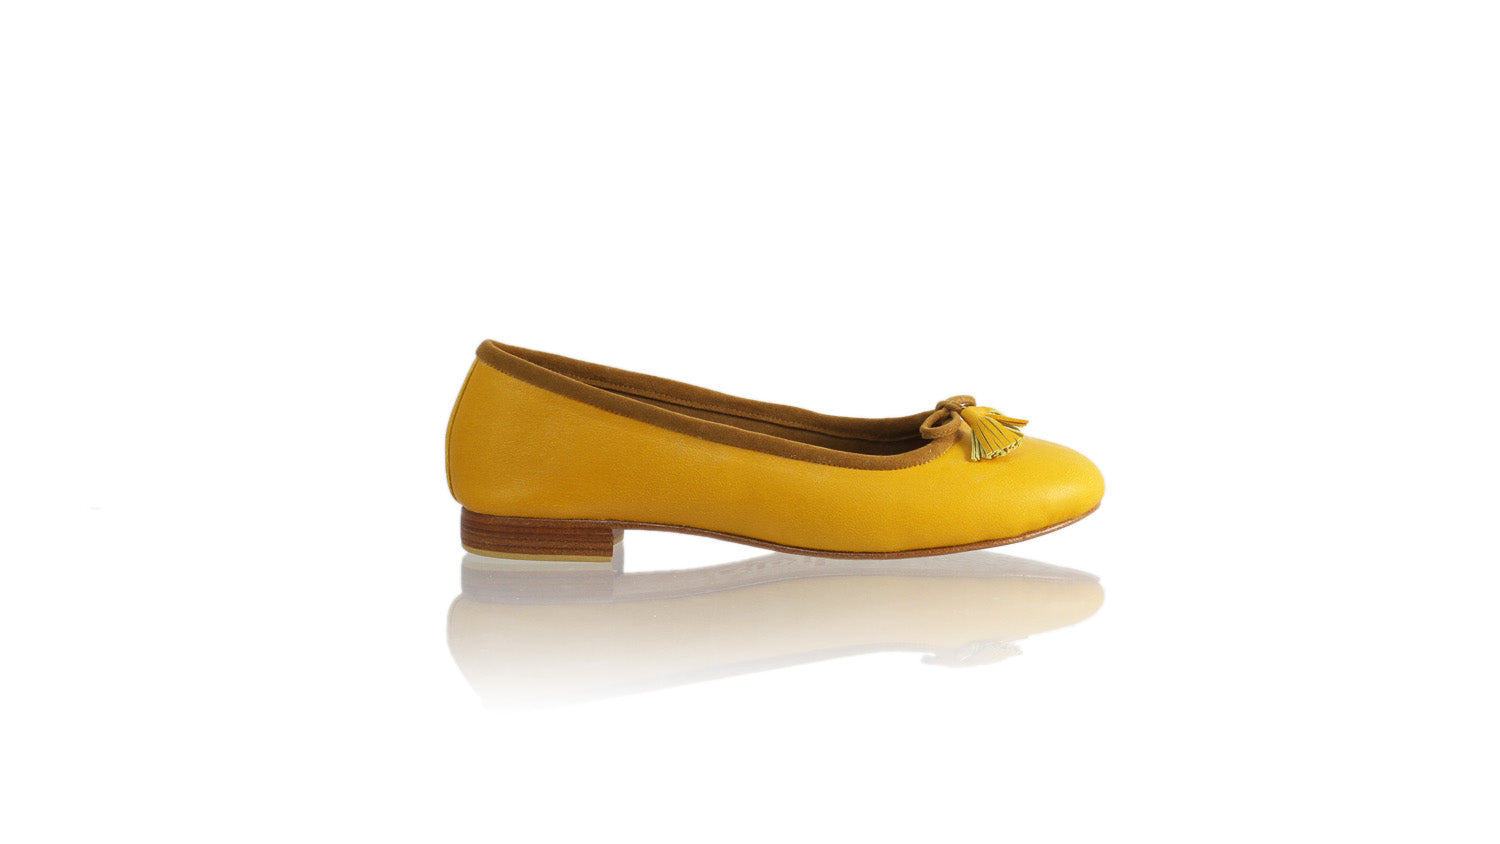 Leather-shoes-Noemi 20mm Ballet - Yellow-flats ballet-NILUH DJELANTIK-NILUH DJELANTIK